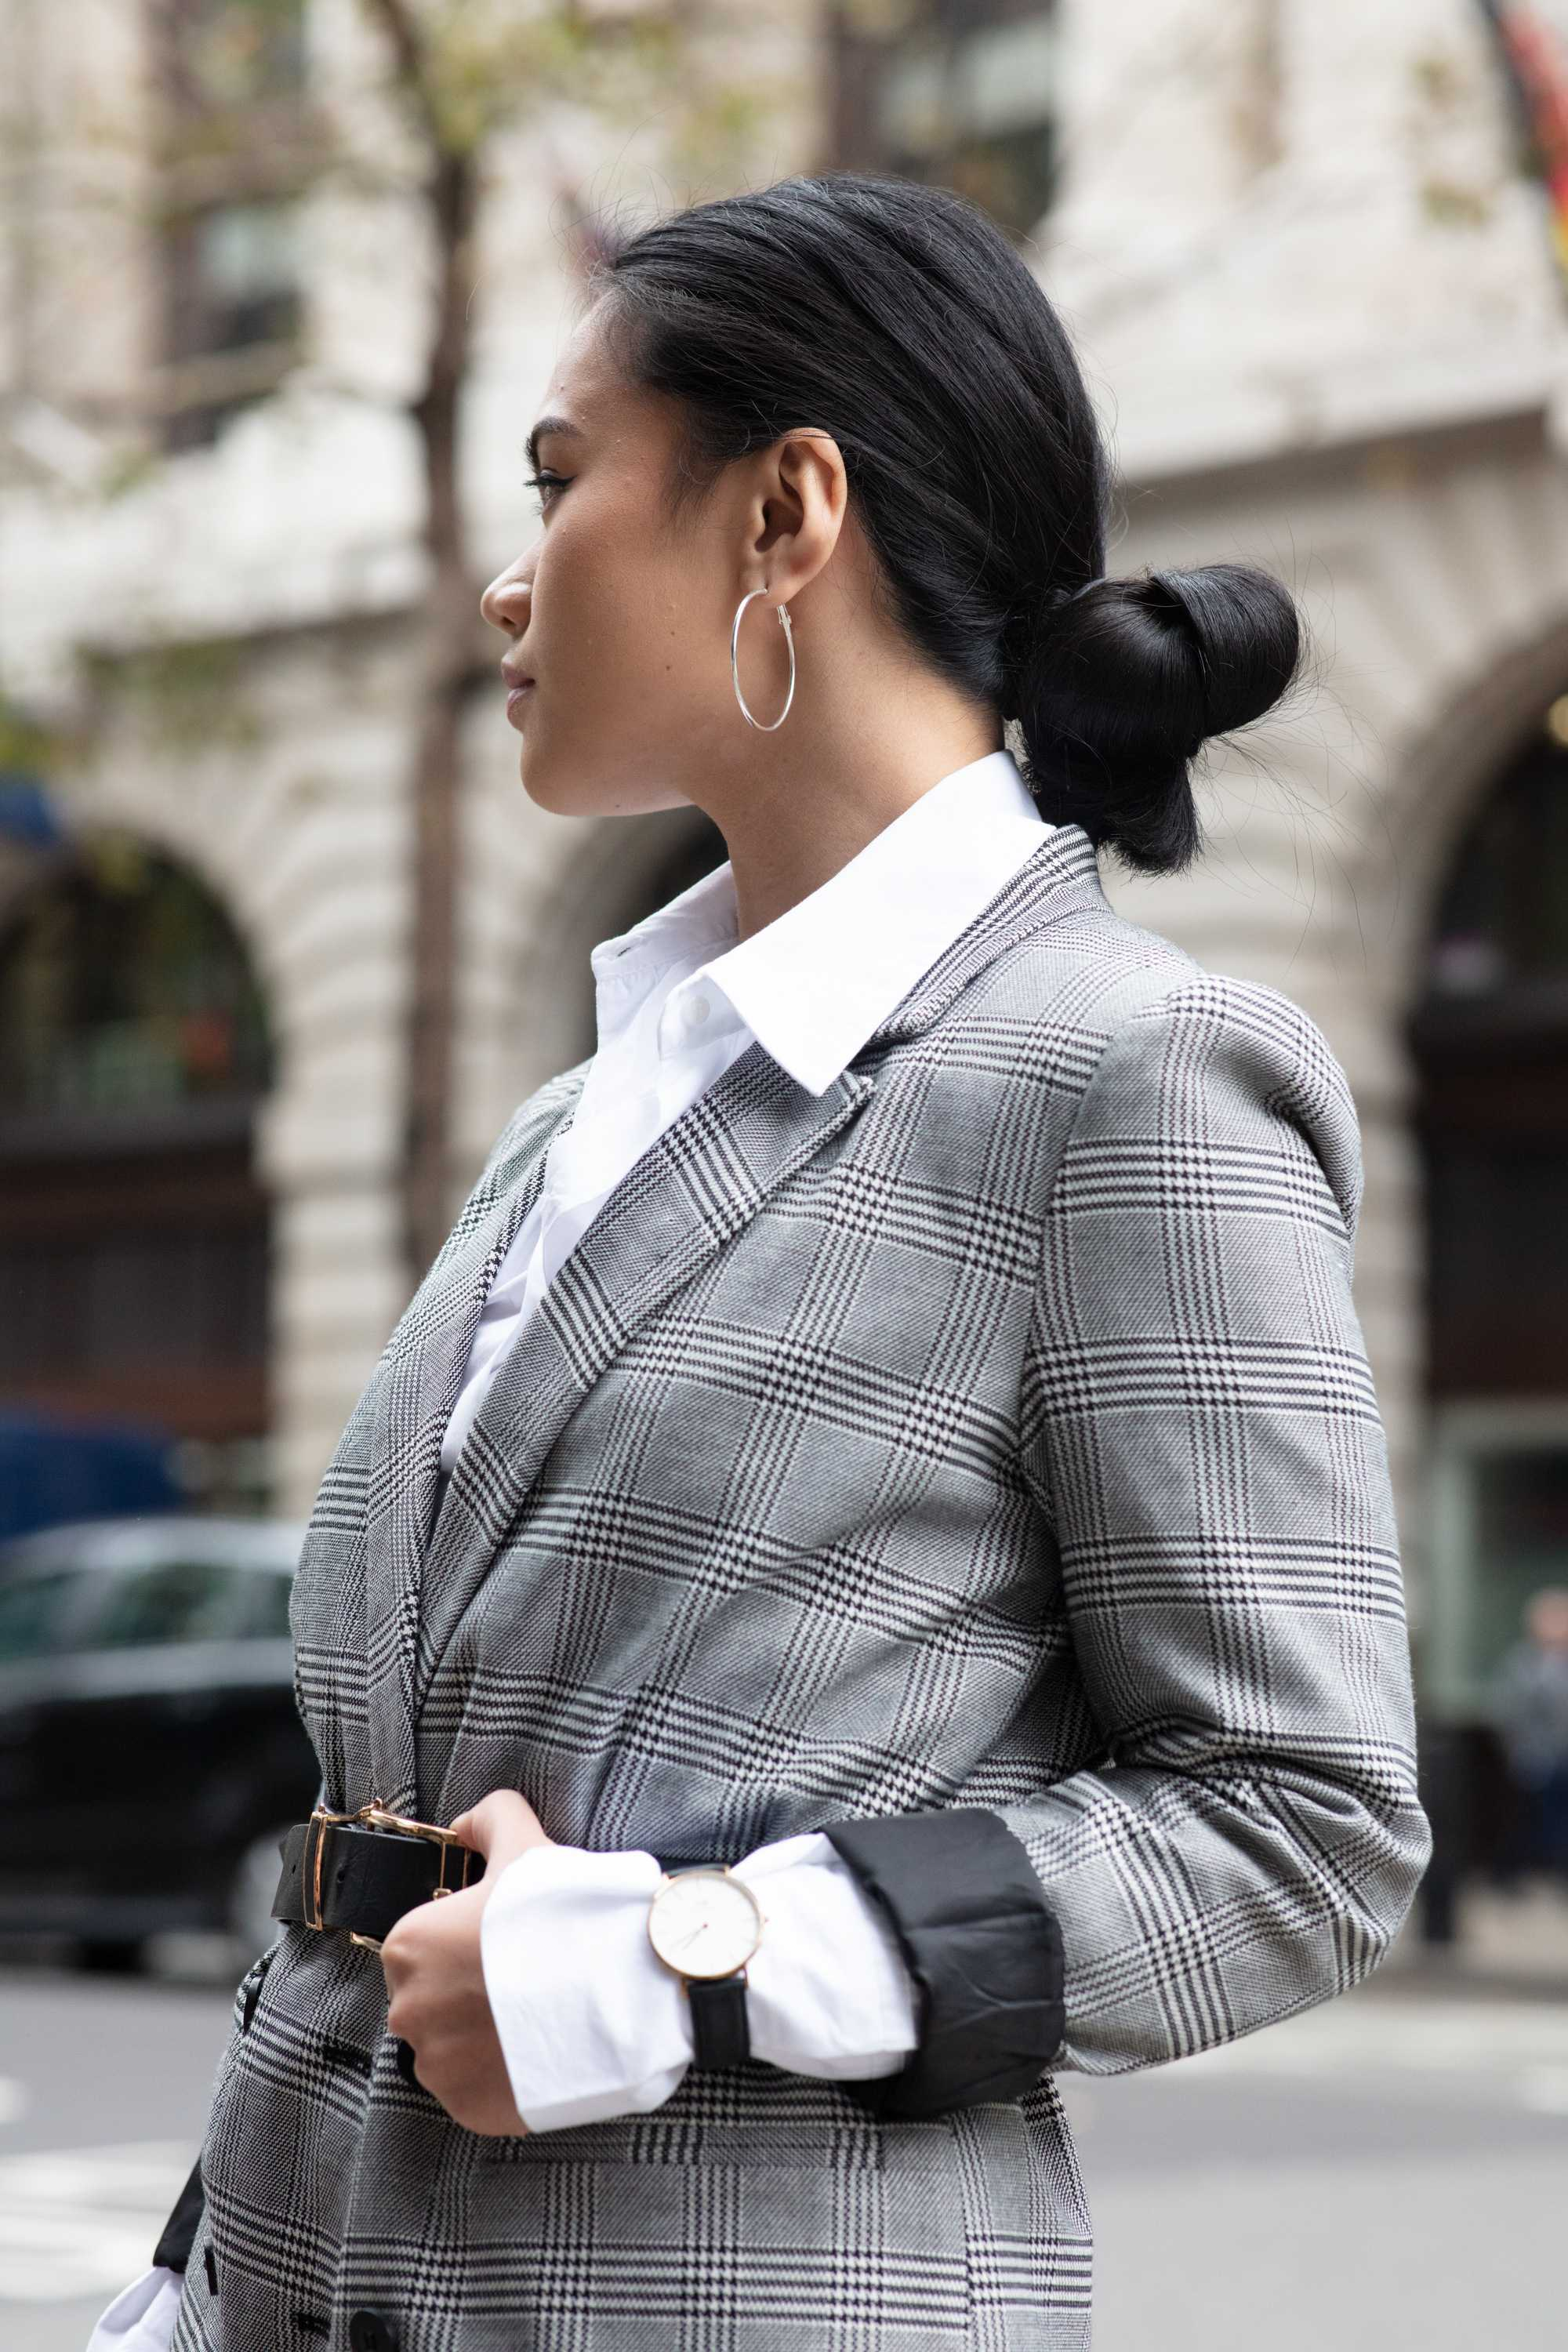 London Fashion Week street style hair: Close up shot of woman with dark brown hair styled into a low bun, wearing checked blazer and white top, while posing on the street